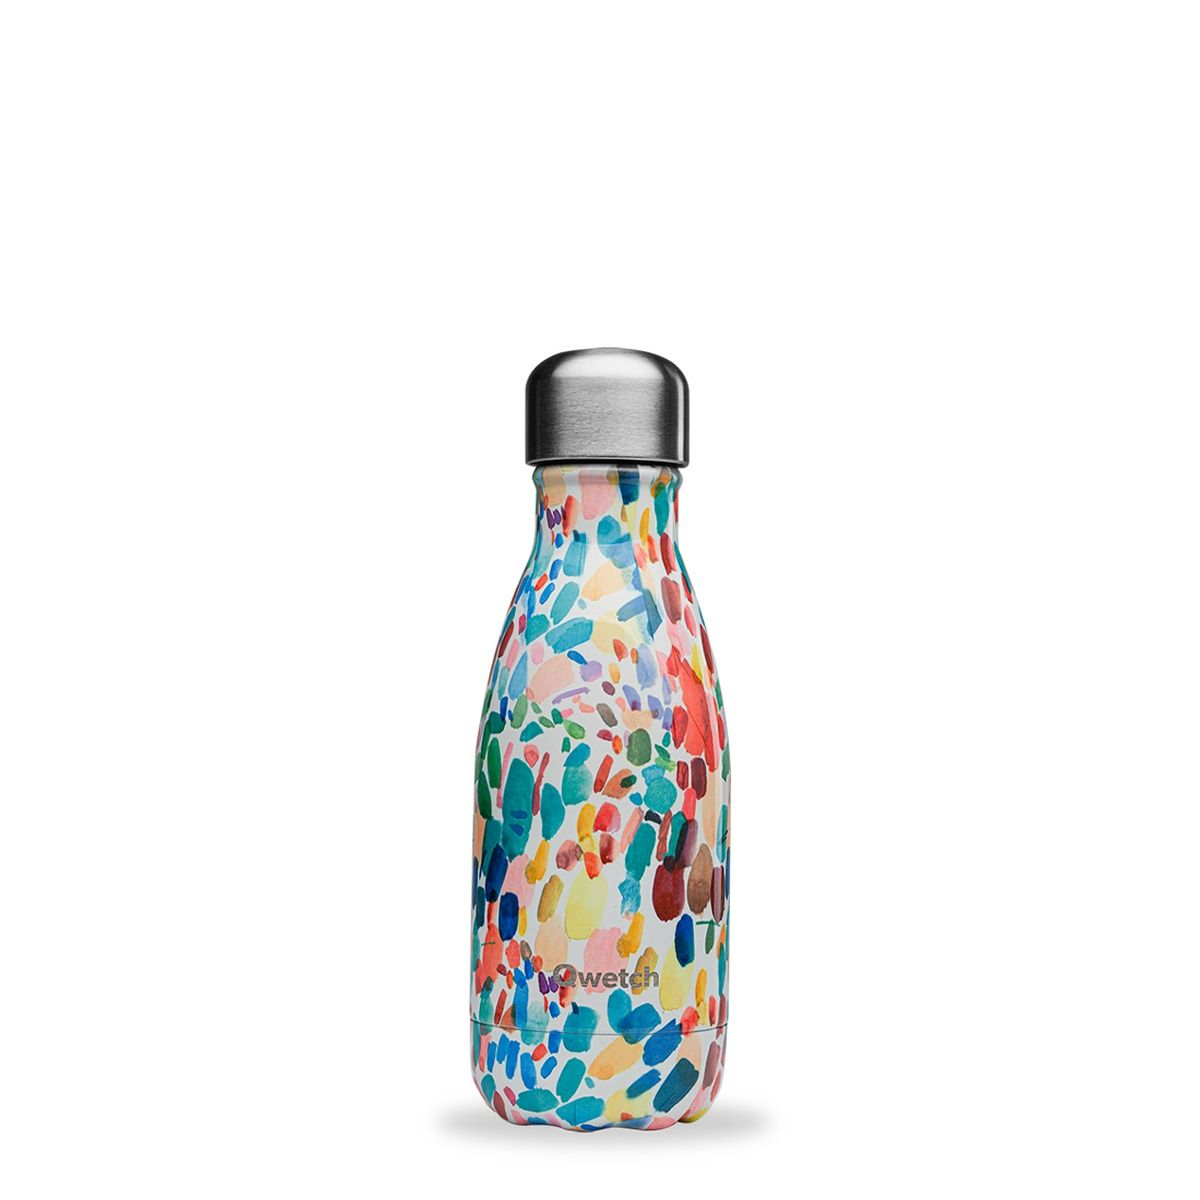 Bouteille isotherme inox 260ml arty - Qwetch